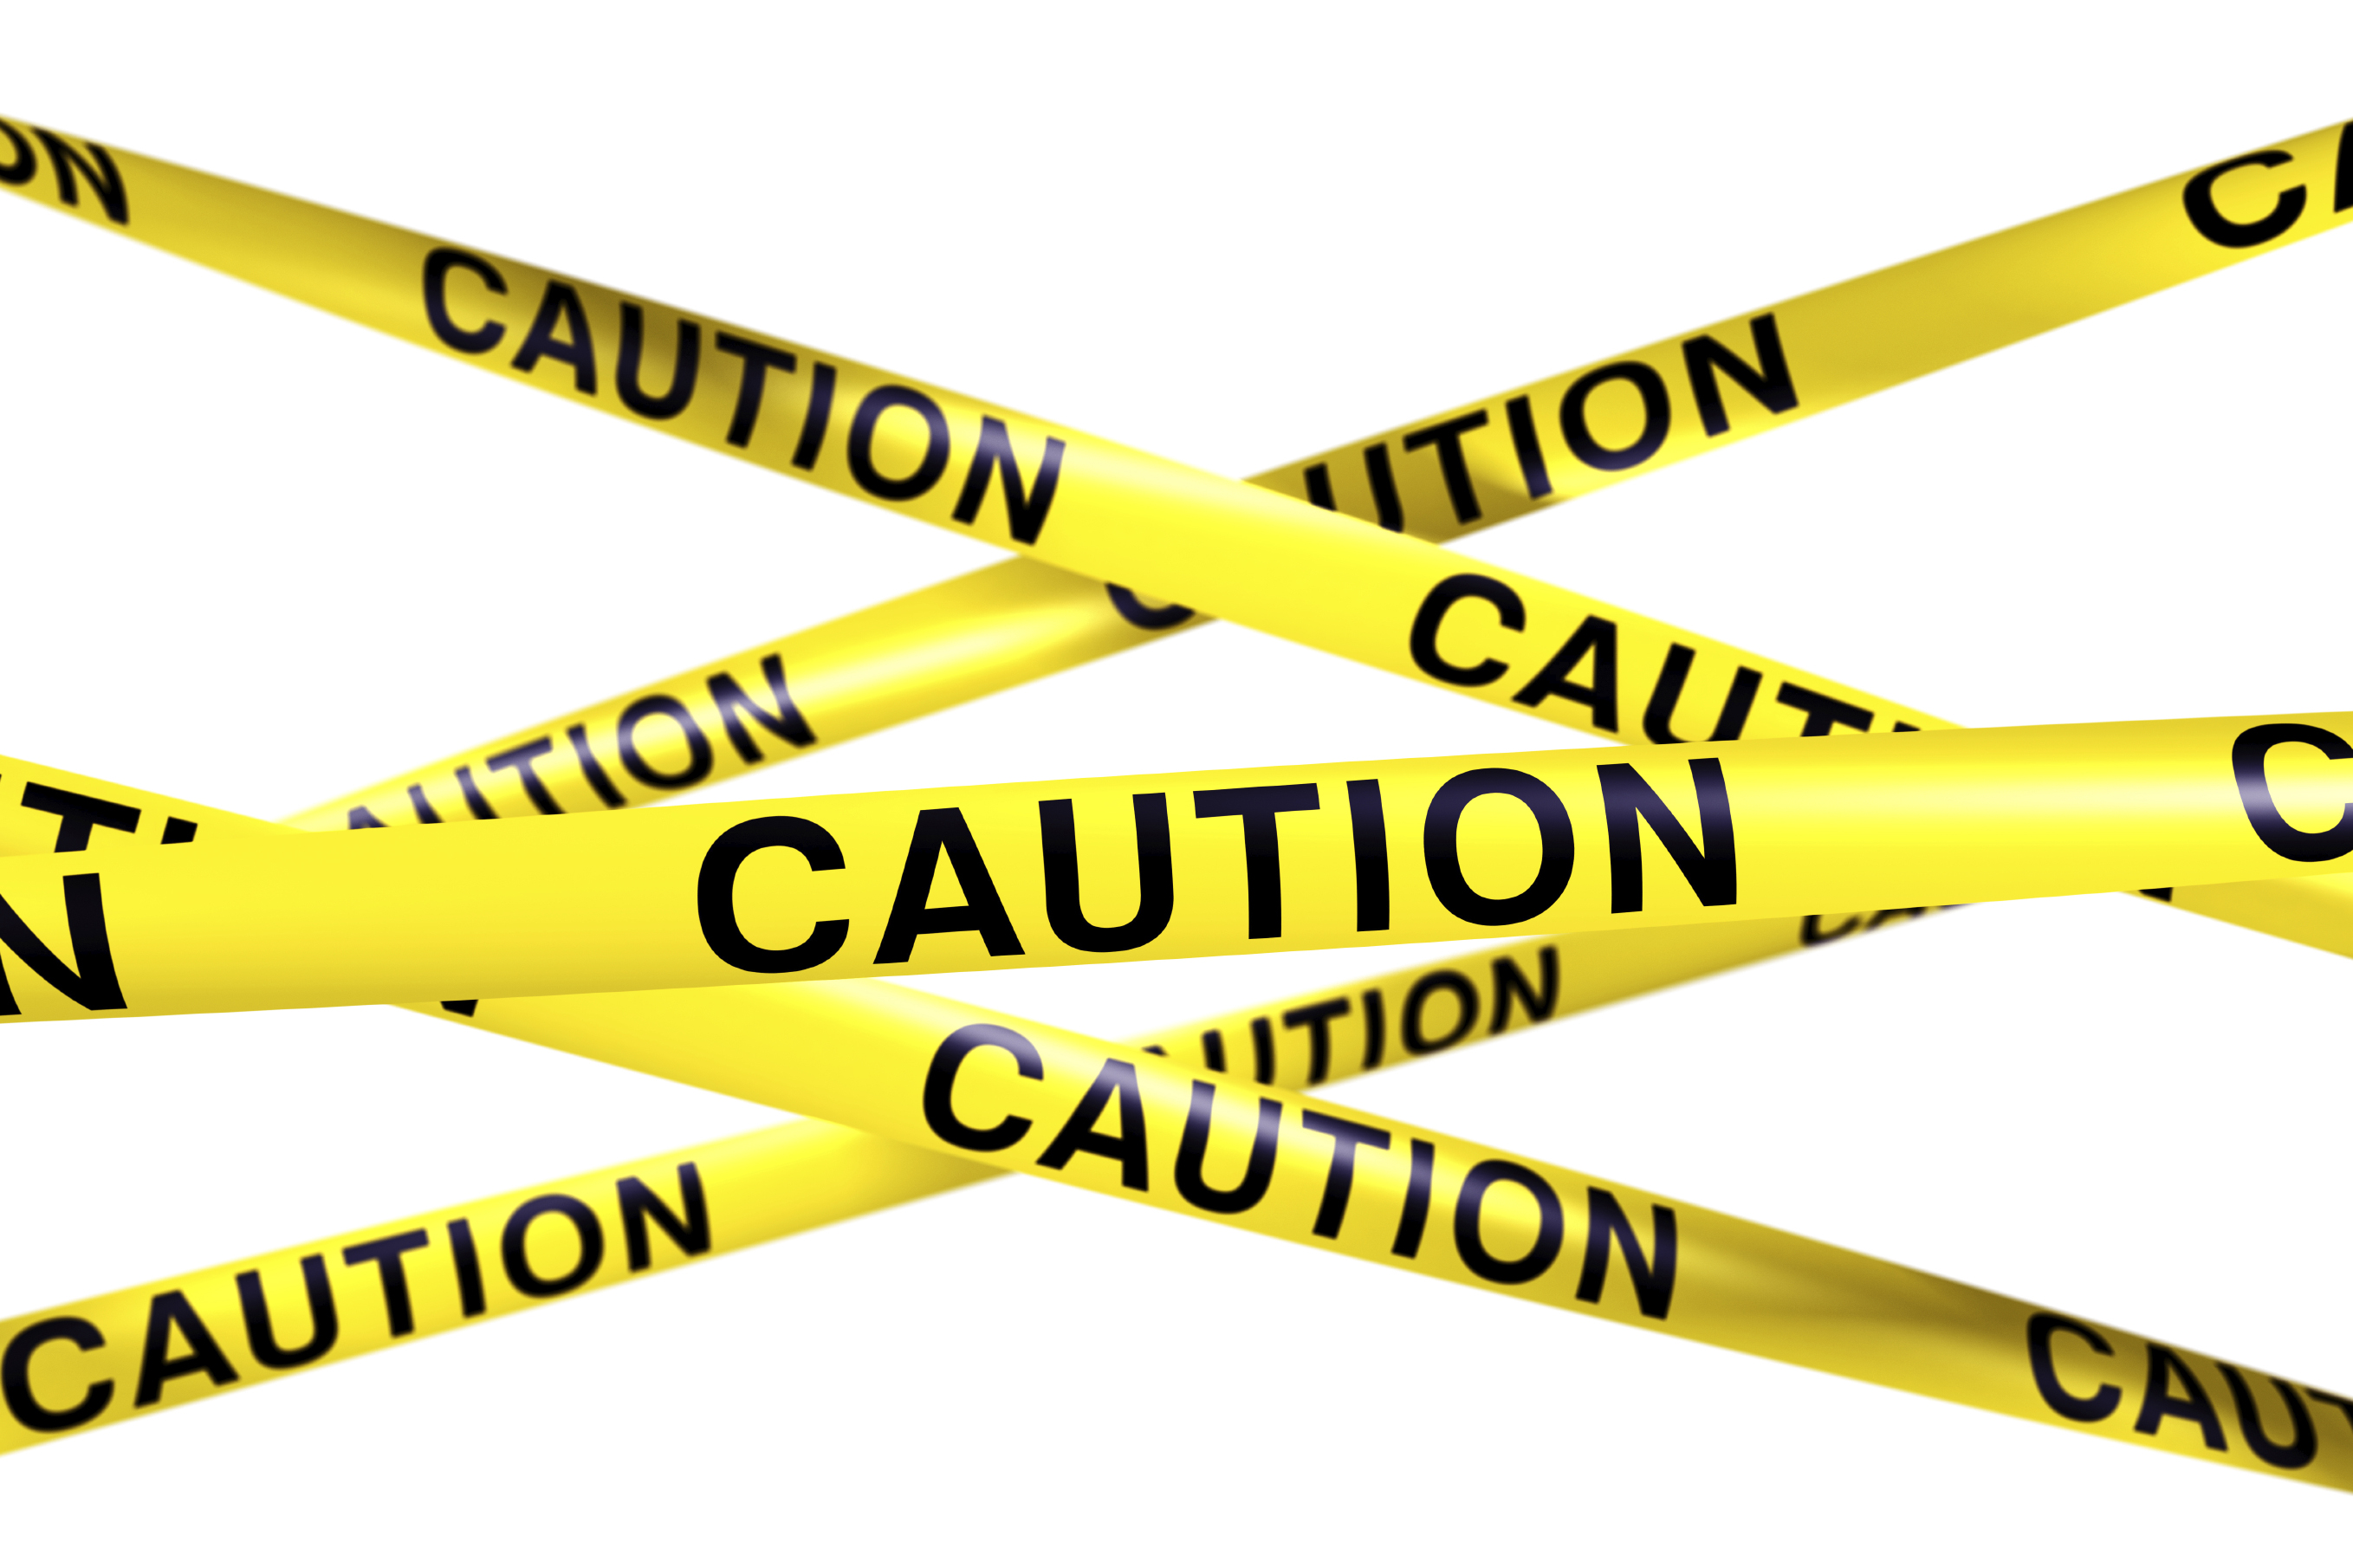 Free Caution Tape Cliparts, Download Free Clip Art, Free.